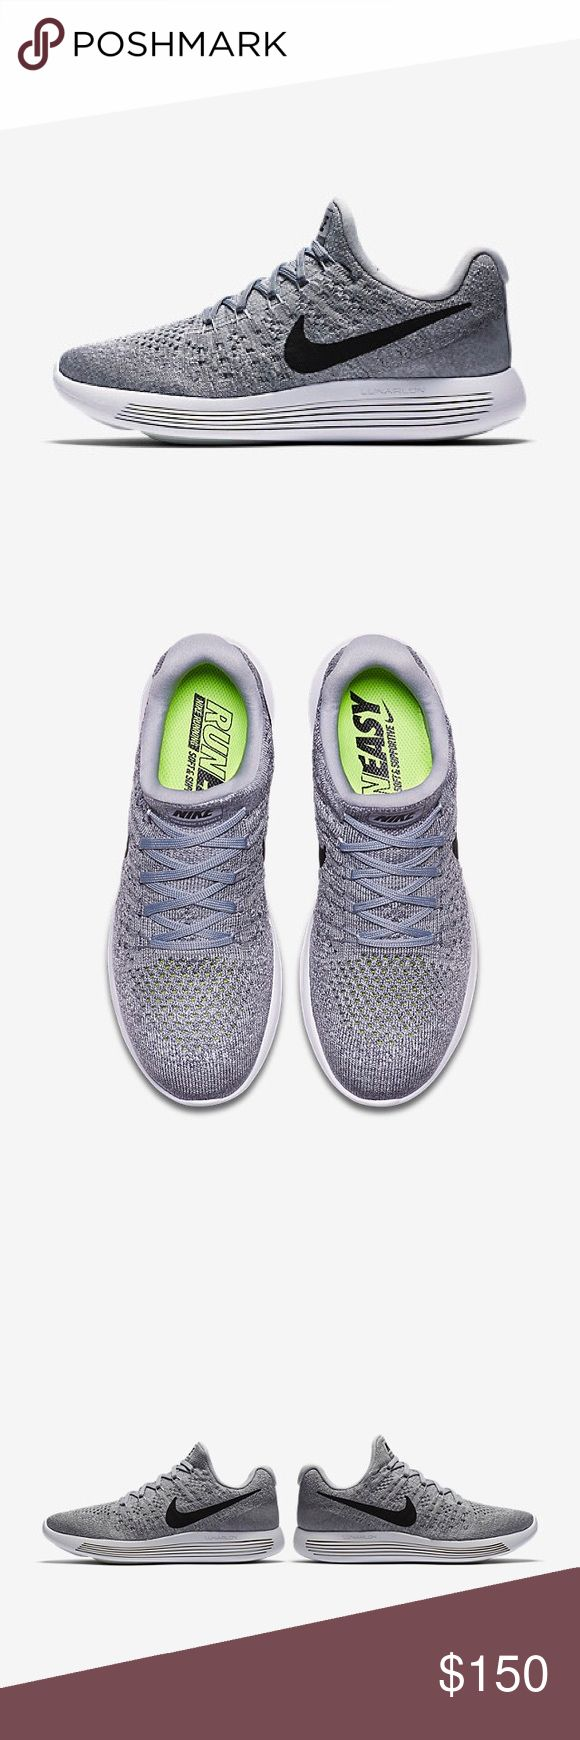 Nike LunarEpic Low Flyknit 2 Women's Running Shoes SEAMLESS COMFORT. TARGETED SUPPORT. The Nike LunarEpic Low Flyknit 2 Women's Running Shoe improves on its predecessor with an updated slip-on design for a snug, seamless fit. The same luxurious cushioning and targeted support remain to help you tackle your longest distances. Color: Wolf Grey/Cool Grey/Pure Platinum/Black Size: 7.  Condition: Brand new Nike Shoes Sneakers